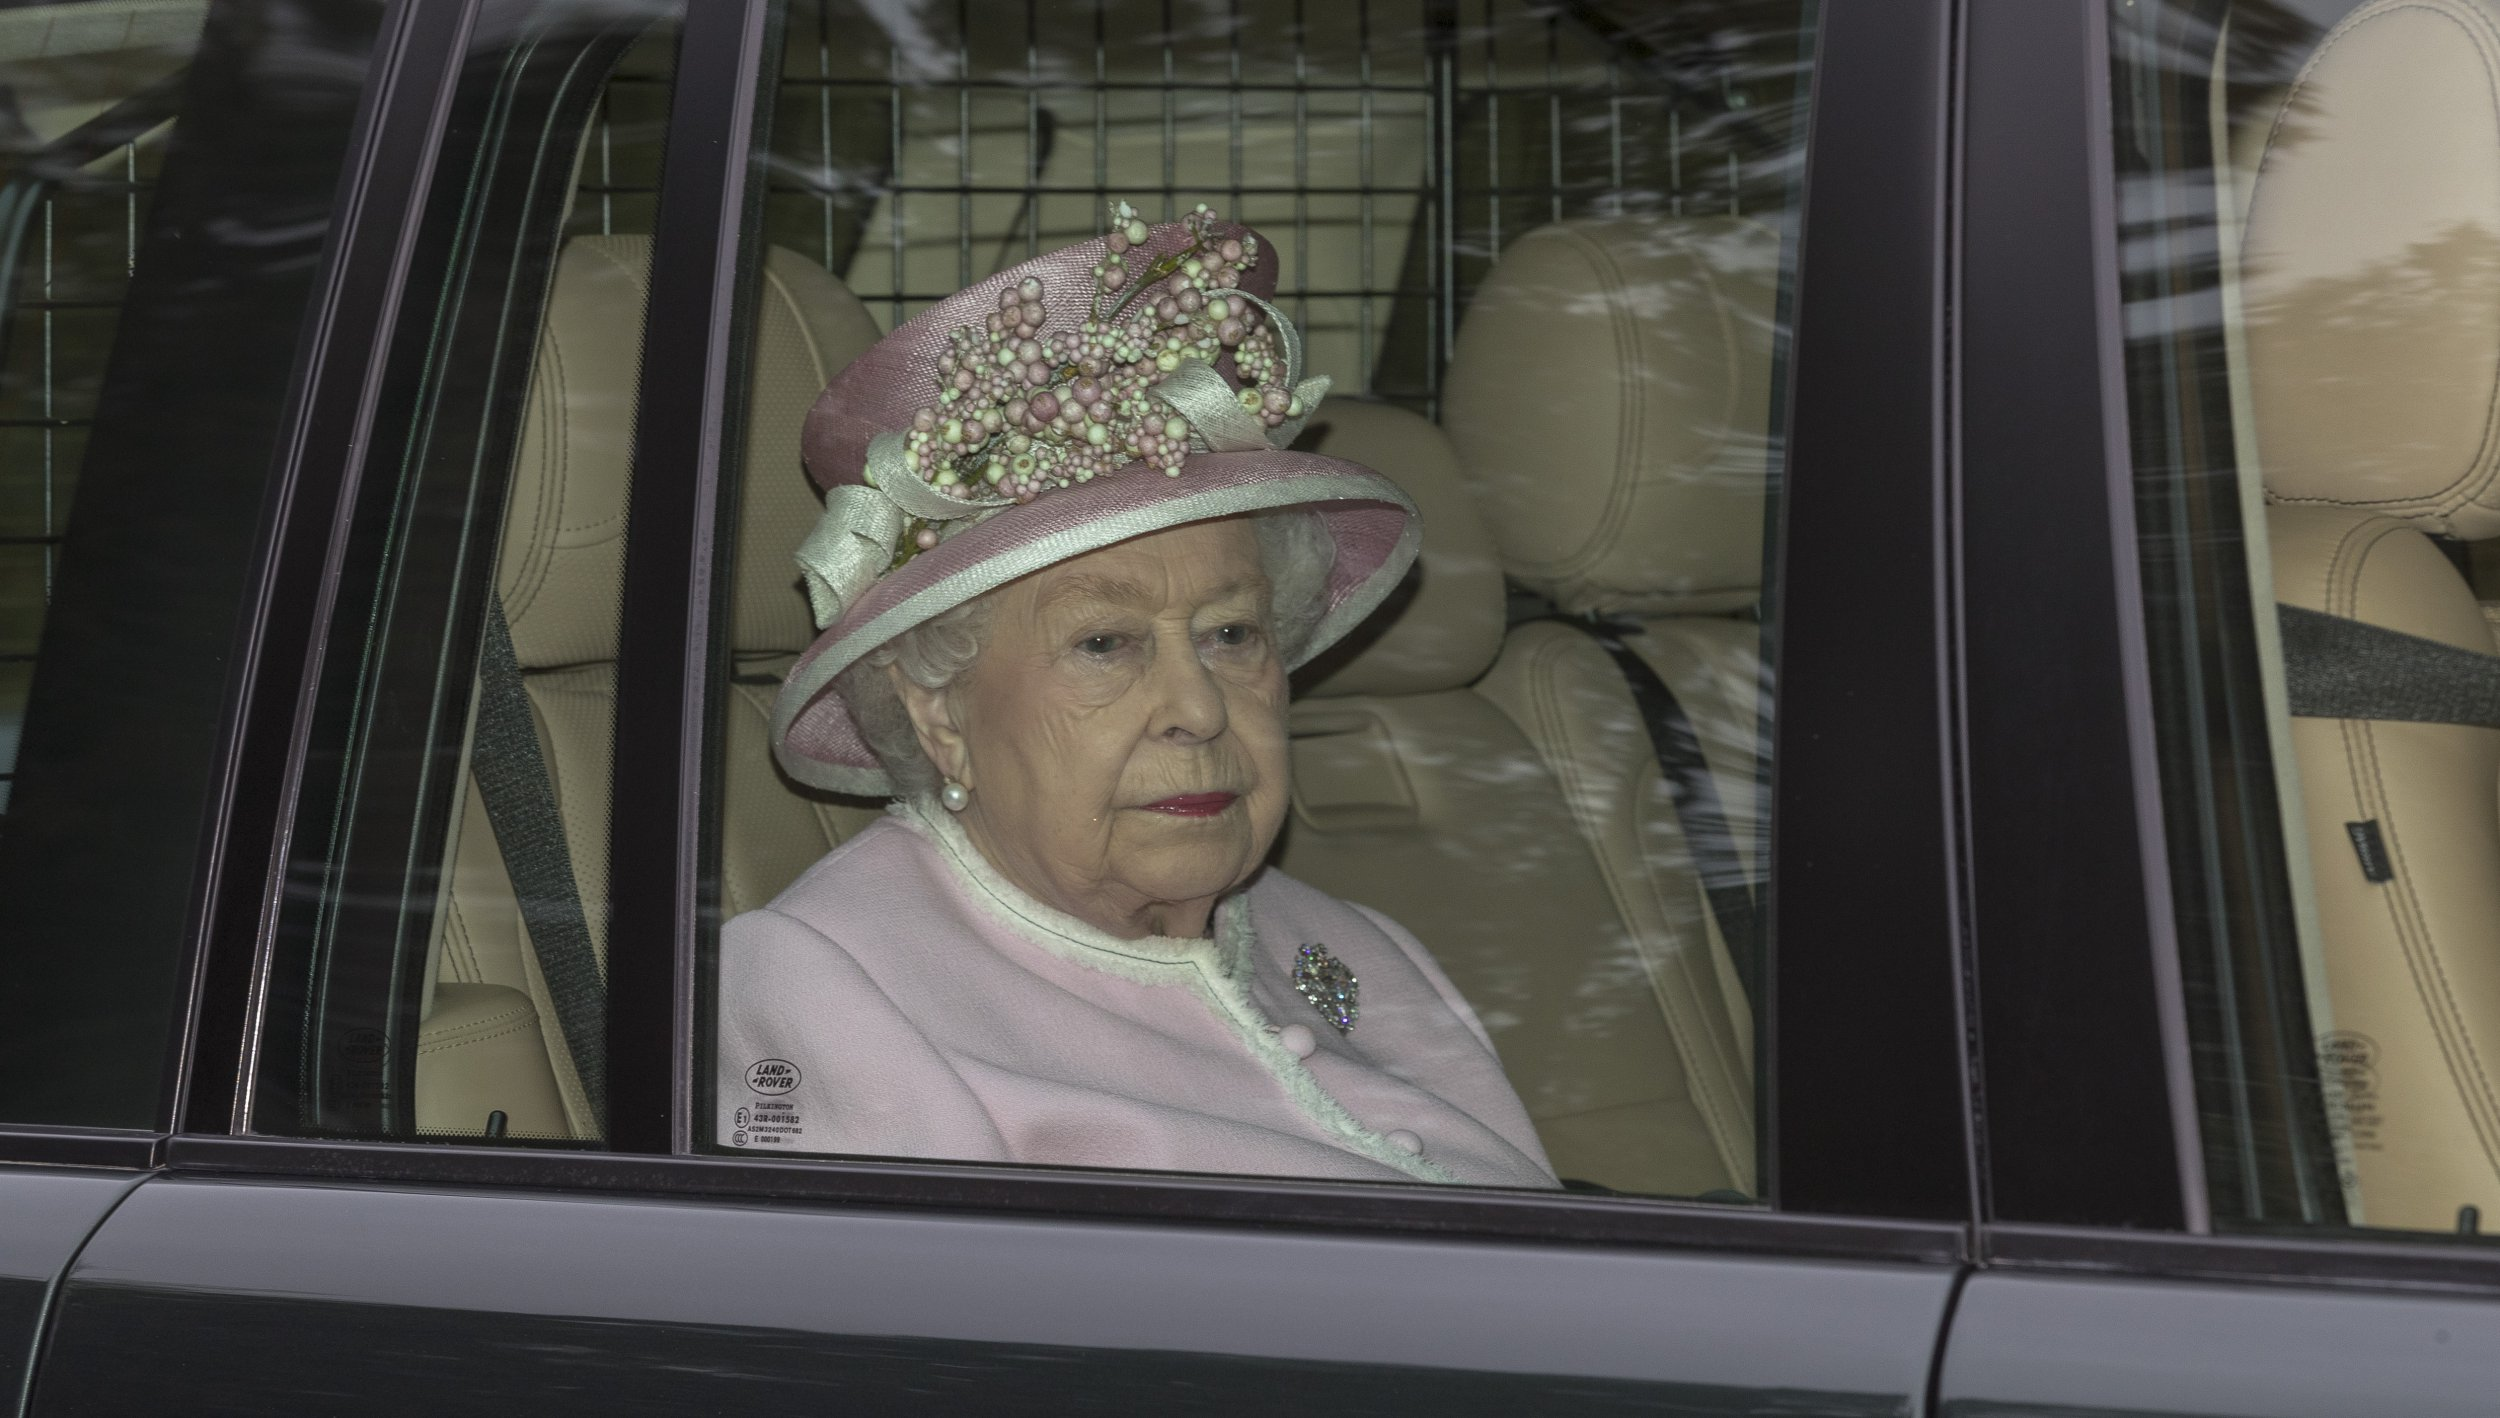 Notice Please Read Rights Usage Terms; Pic Shows;The Queen is Driven to church service at the Royal Chapel today 31/3/19 in Windsor Great Park After she has decided not to Drive any more On Public Roads. These Pictures are for use on Printed Media or That company,s Website.No Social media use.Without Prior Consent from the Copyright Owner.Please see Rights Usage Terms.